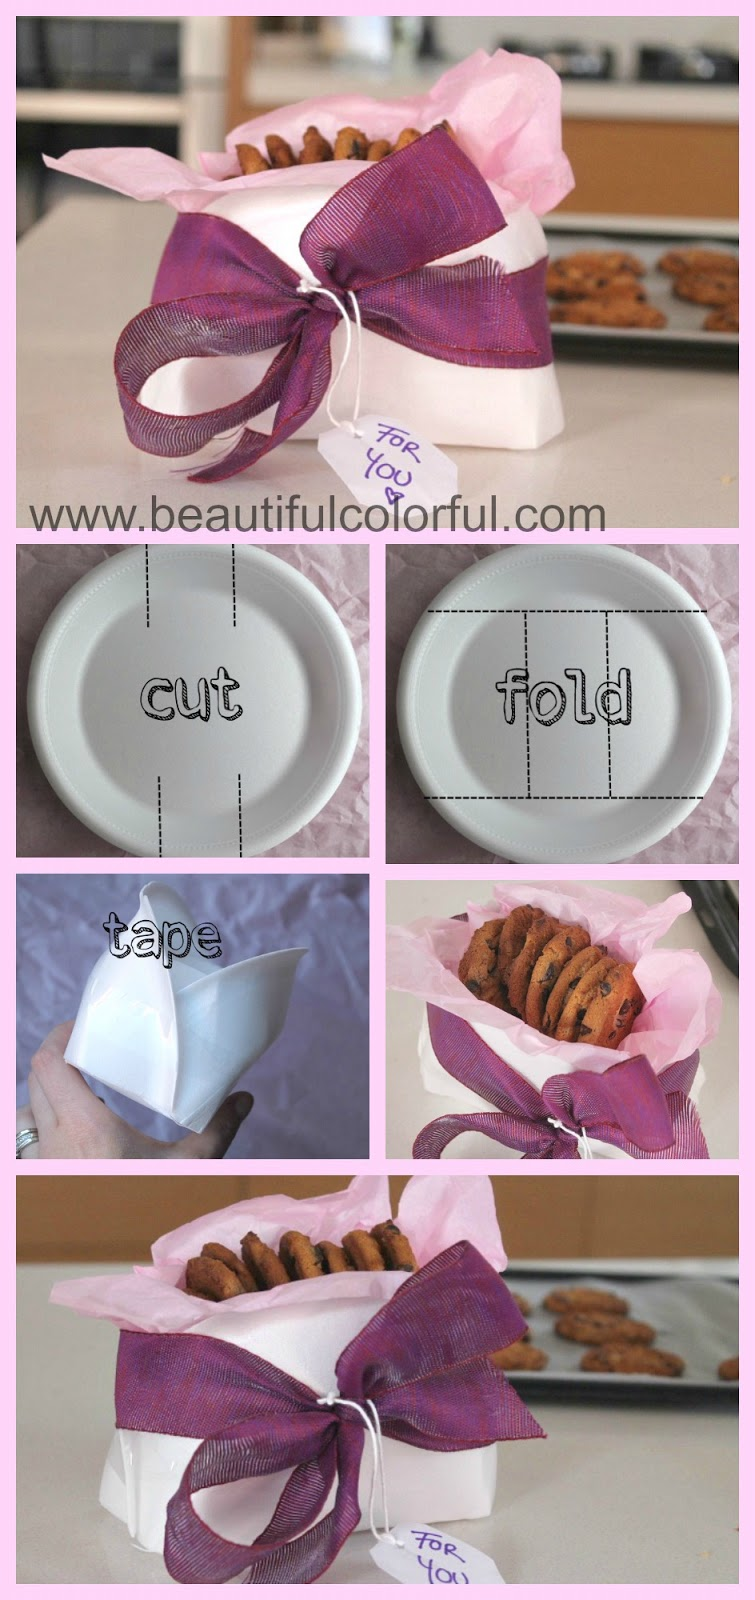 diy beautiful and easy paper plate cookie baskets - beautiful & How To Make Cookie Baskets Out Of Paper Plates \u2013 Buffet Design